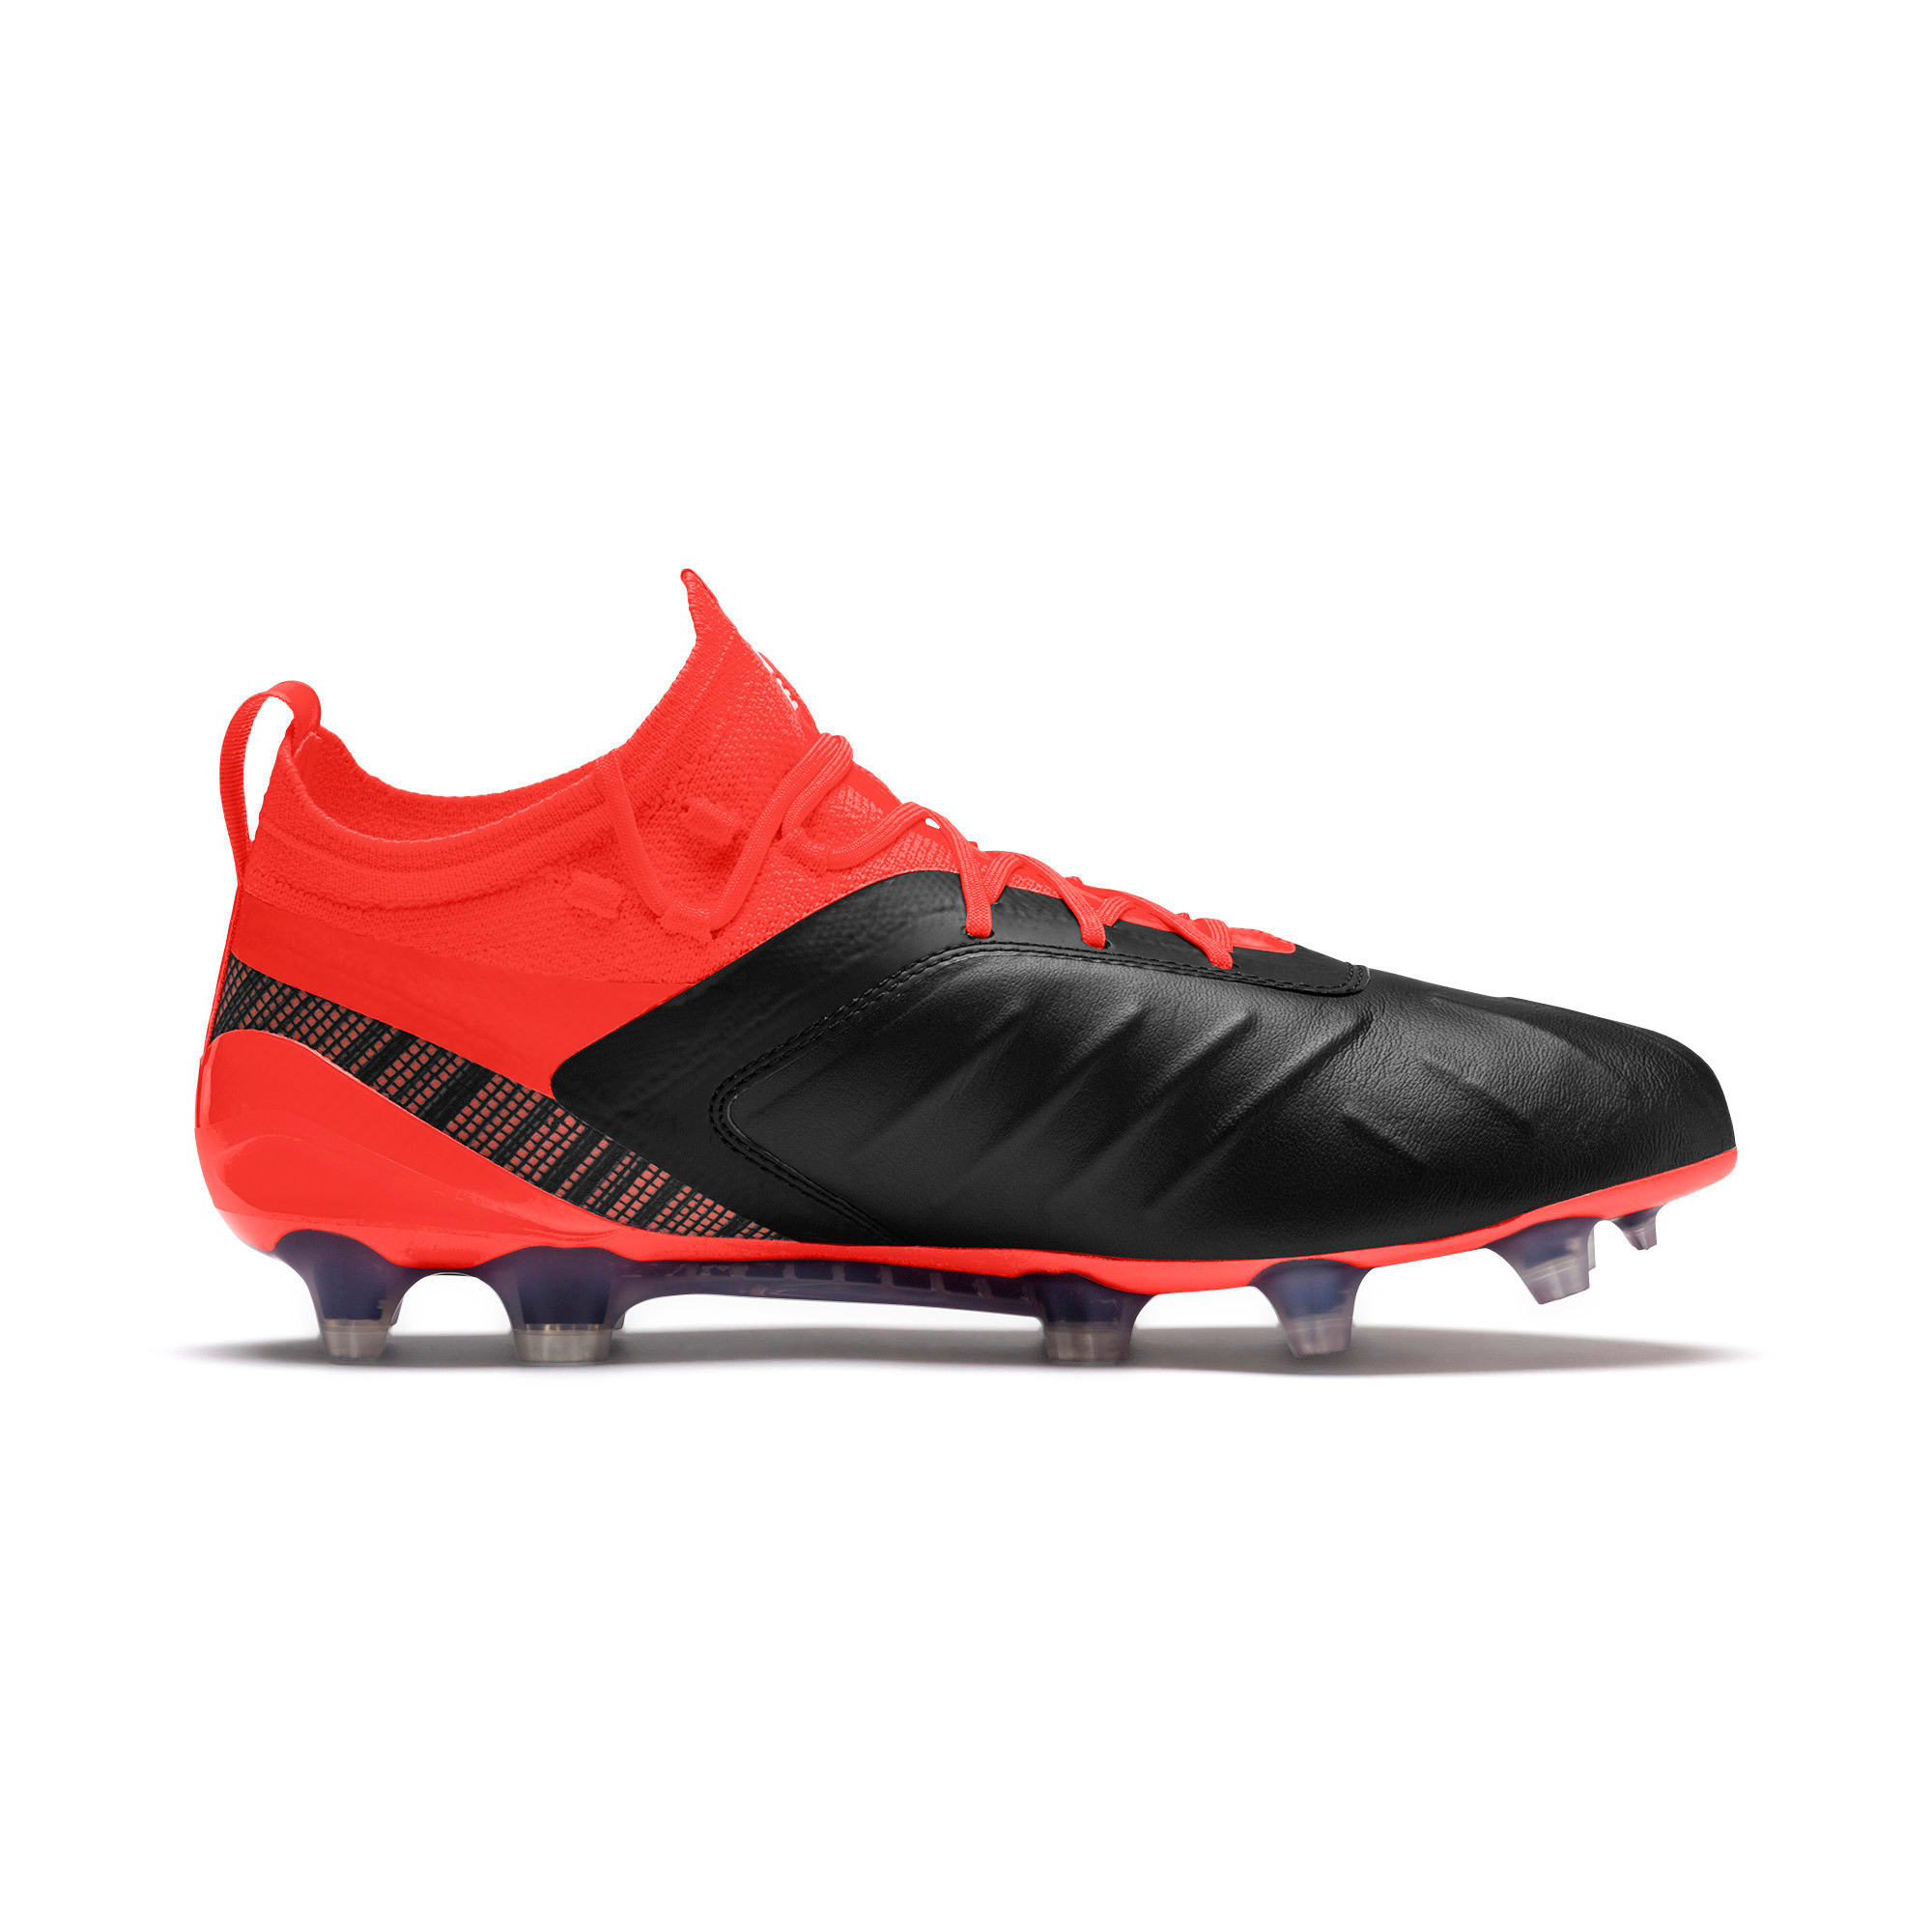 PUMA ONE 5.1 evoKNIT FG/AG voetbalschoenen voor mannen, Black-Nrgy Red-Aged Silver, large